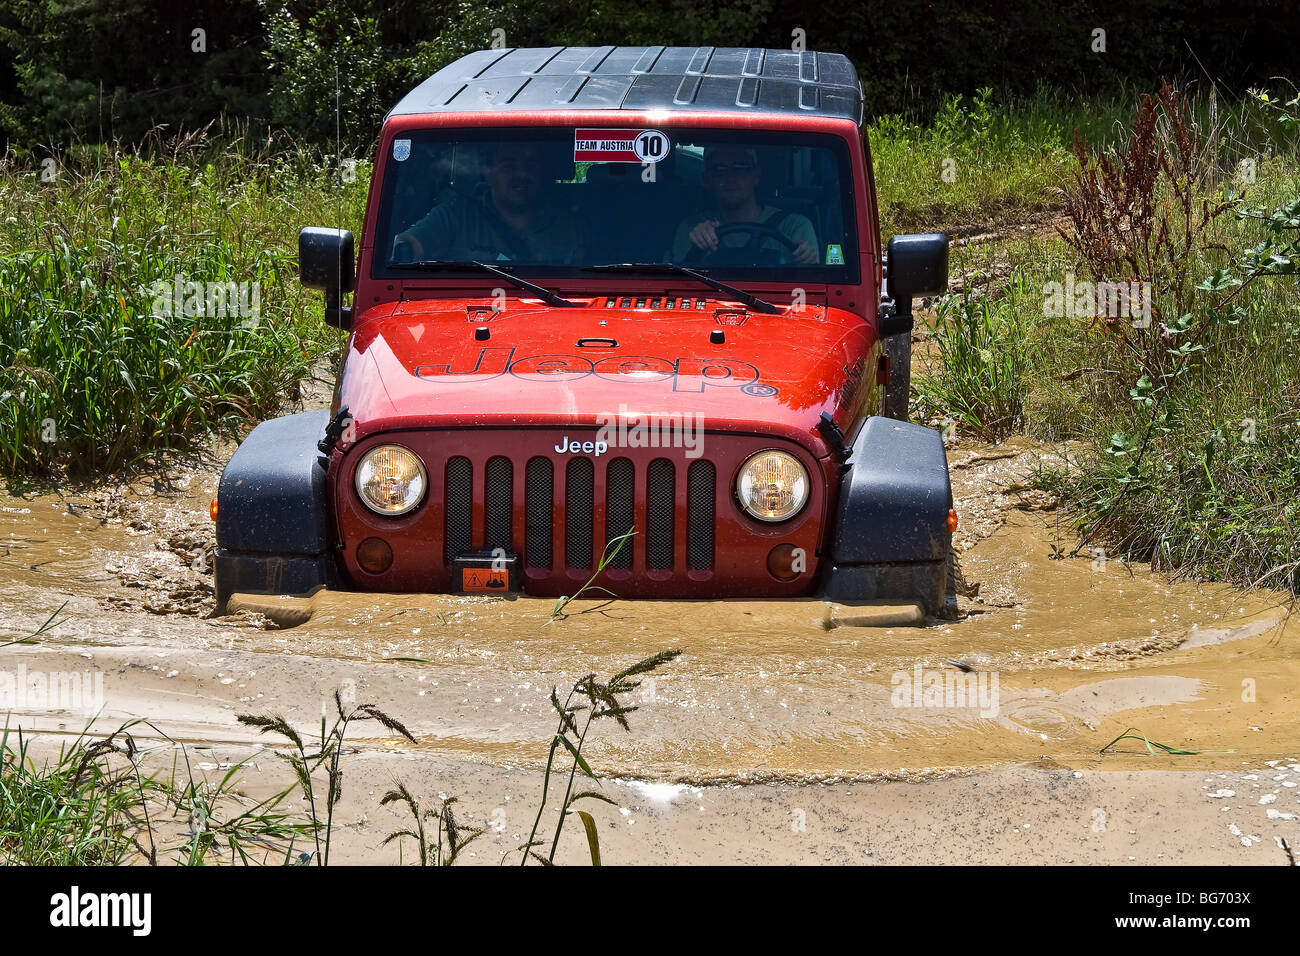 Jeep Wrangler get stuck in mud - Stock Image